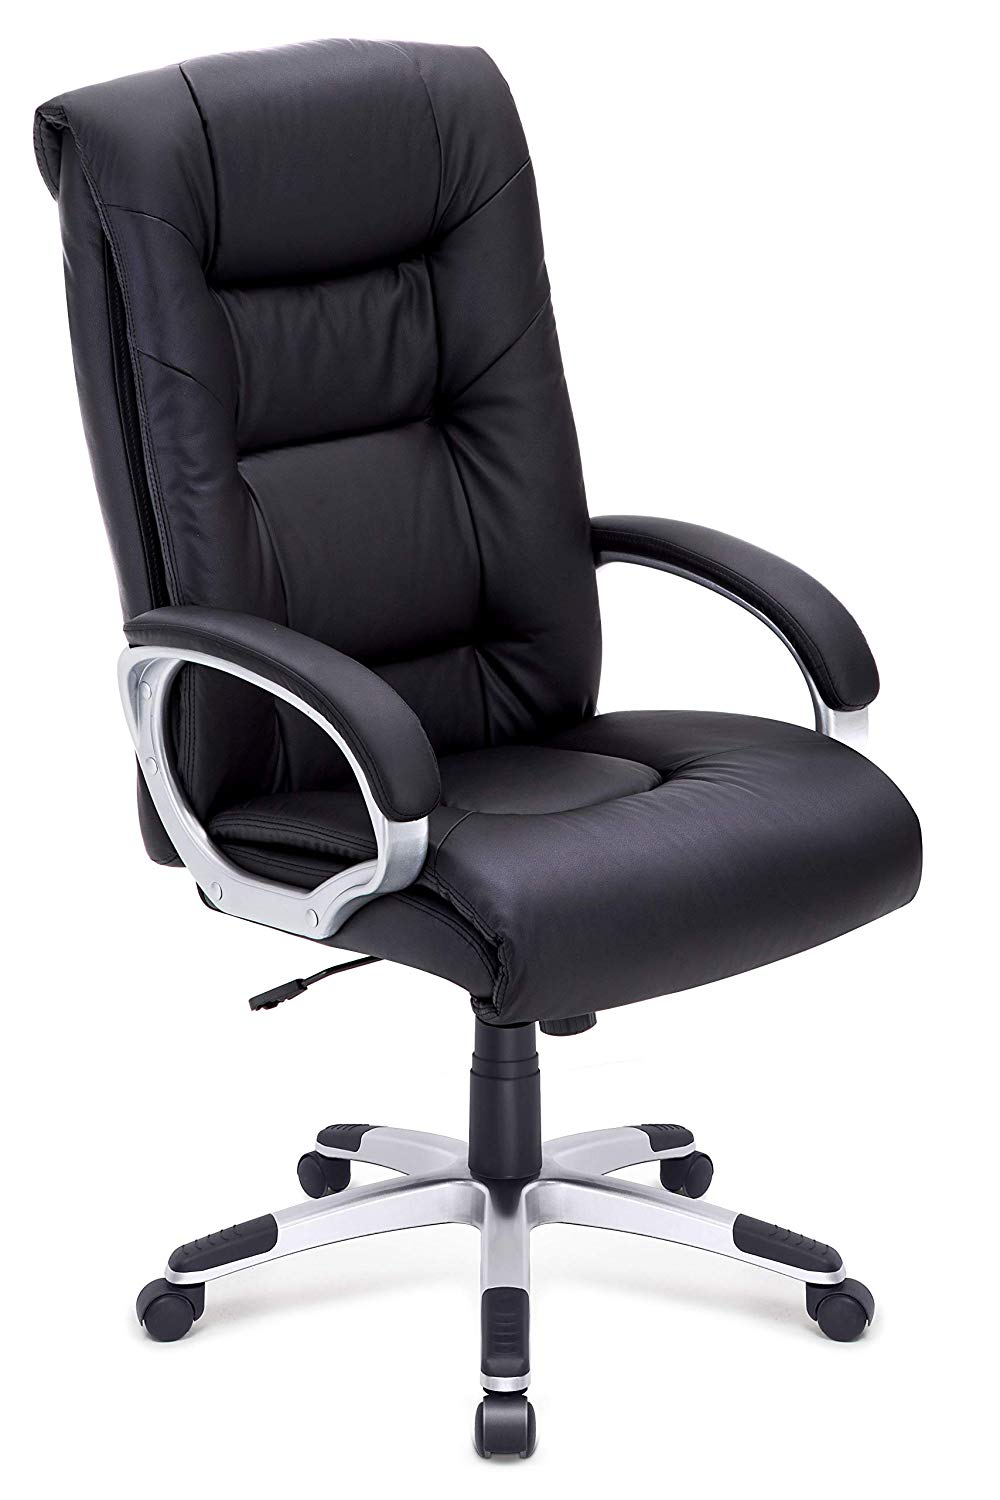 High-Back Executive Office Chair Faux Leather Large Seat Computer Chair Ergonomic Design Adjustable Seat Height WCG DE